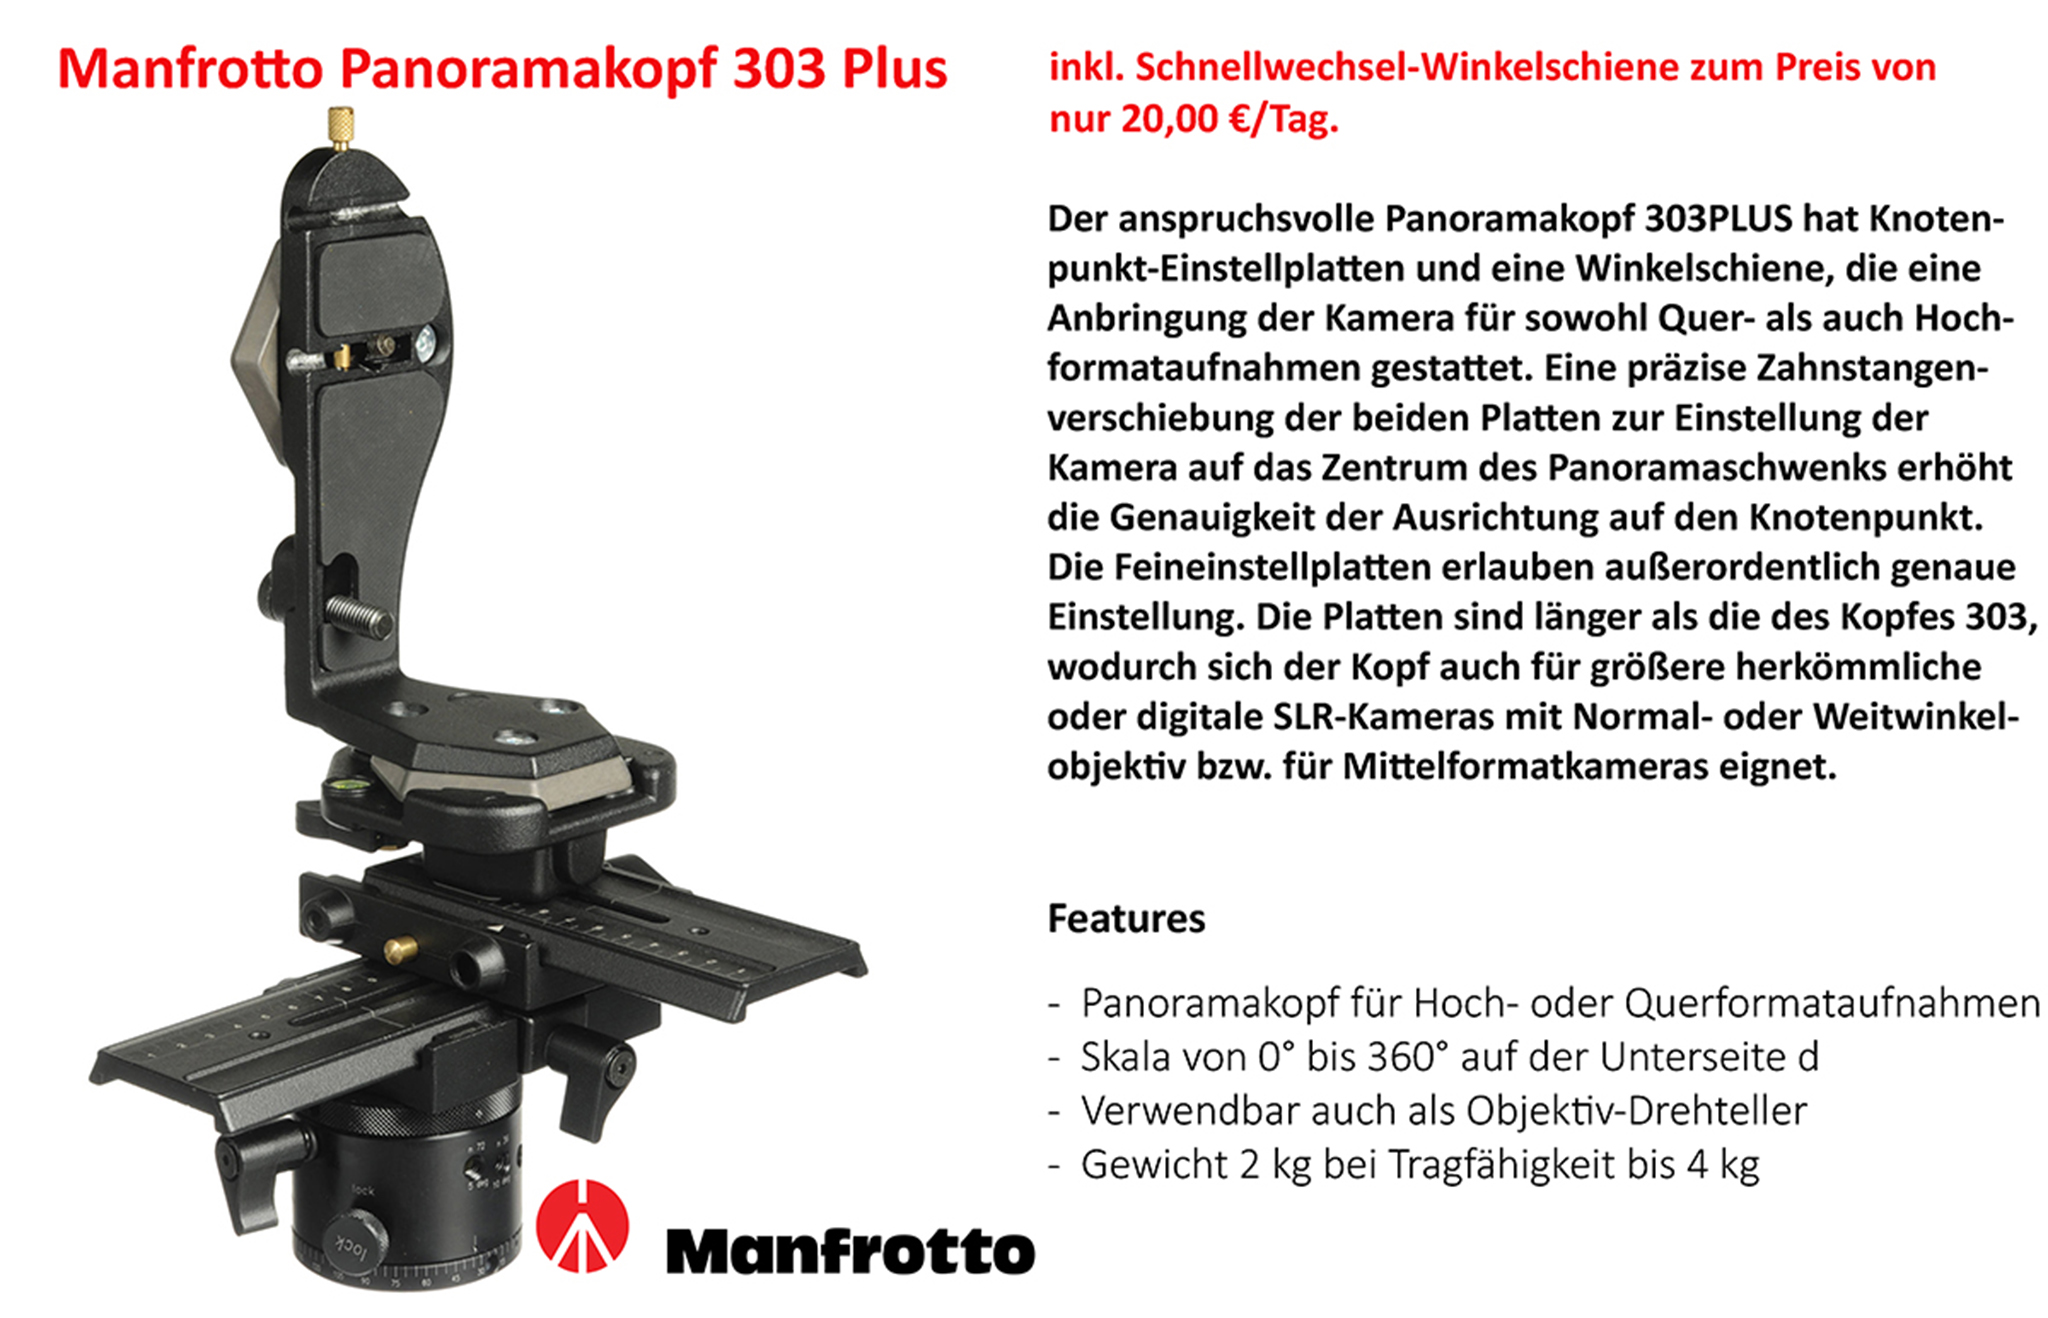 Manfrotto Panoramakopf 303 Plus